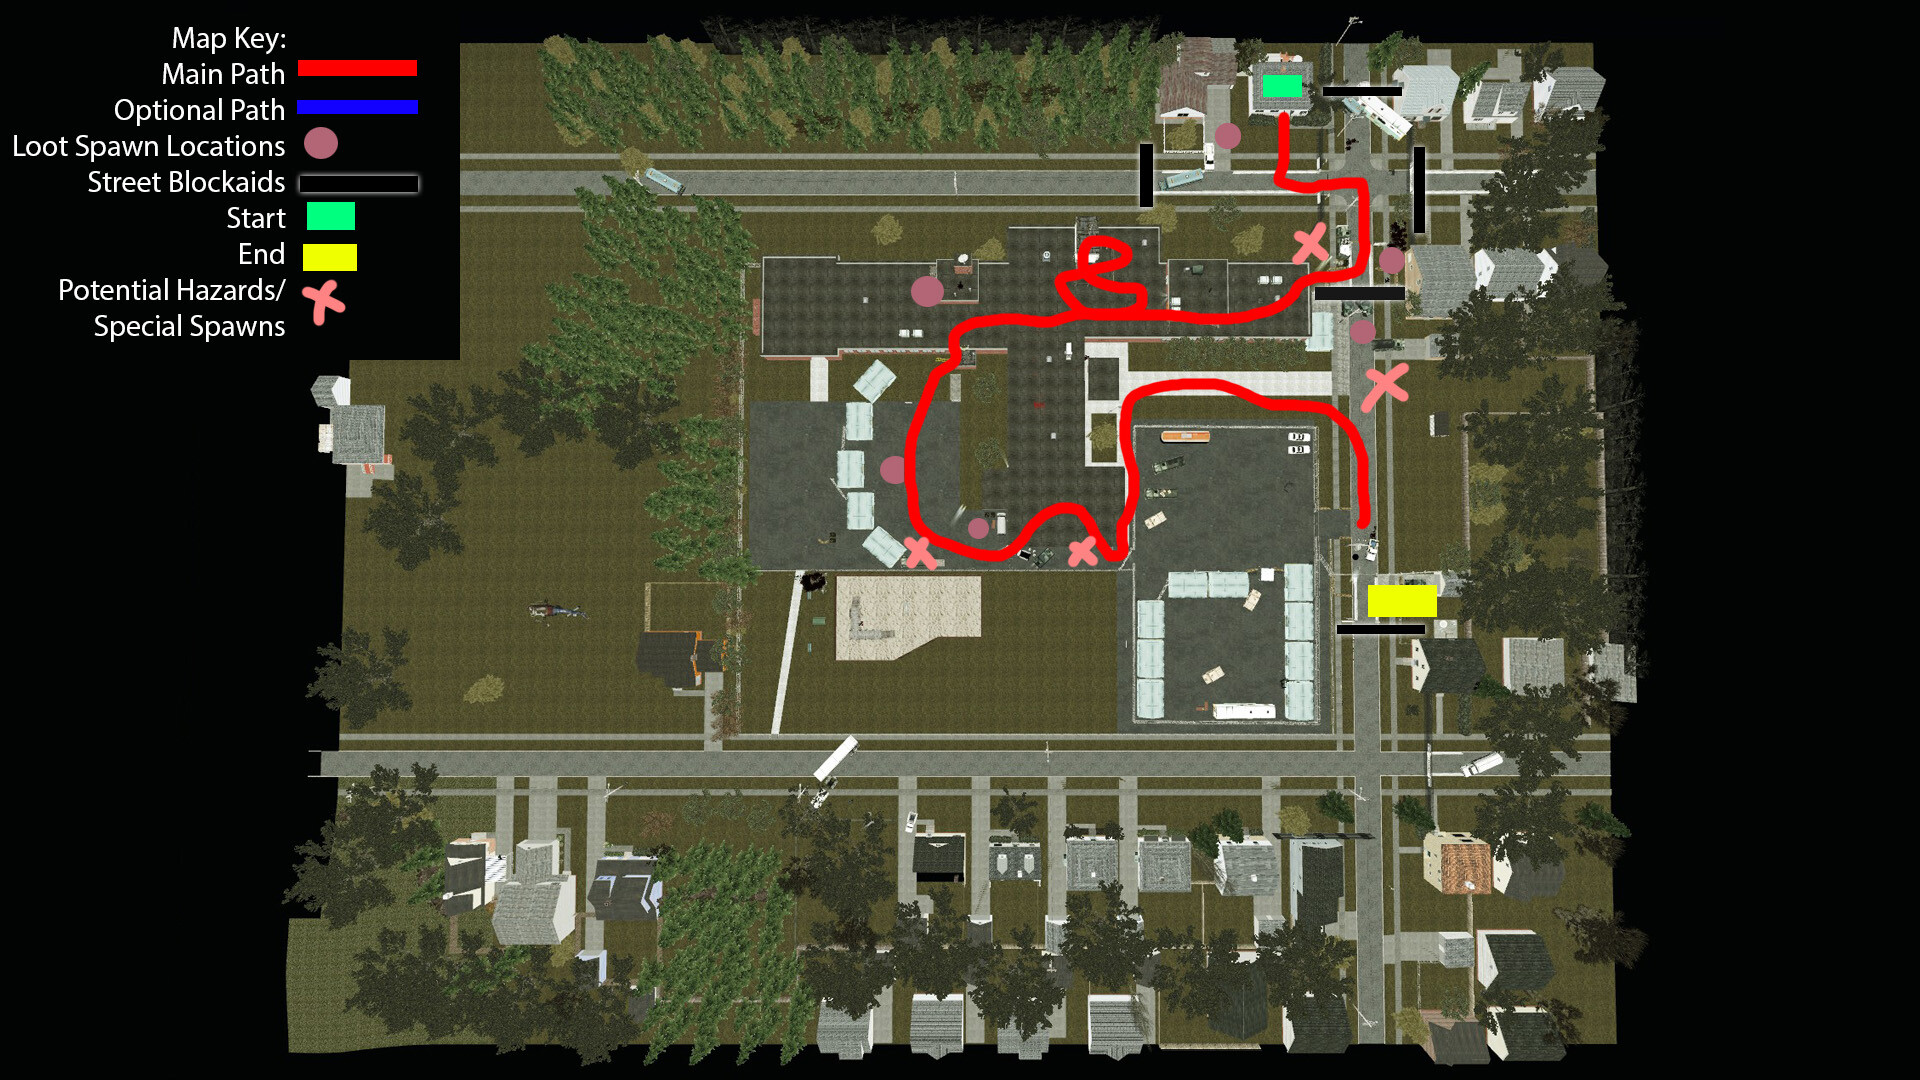 Top down view of the School level. Players must follow the red path to reach the safe house, but there are several areas around where players can explore to find additional supplies and story elements.